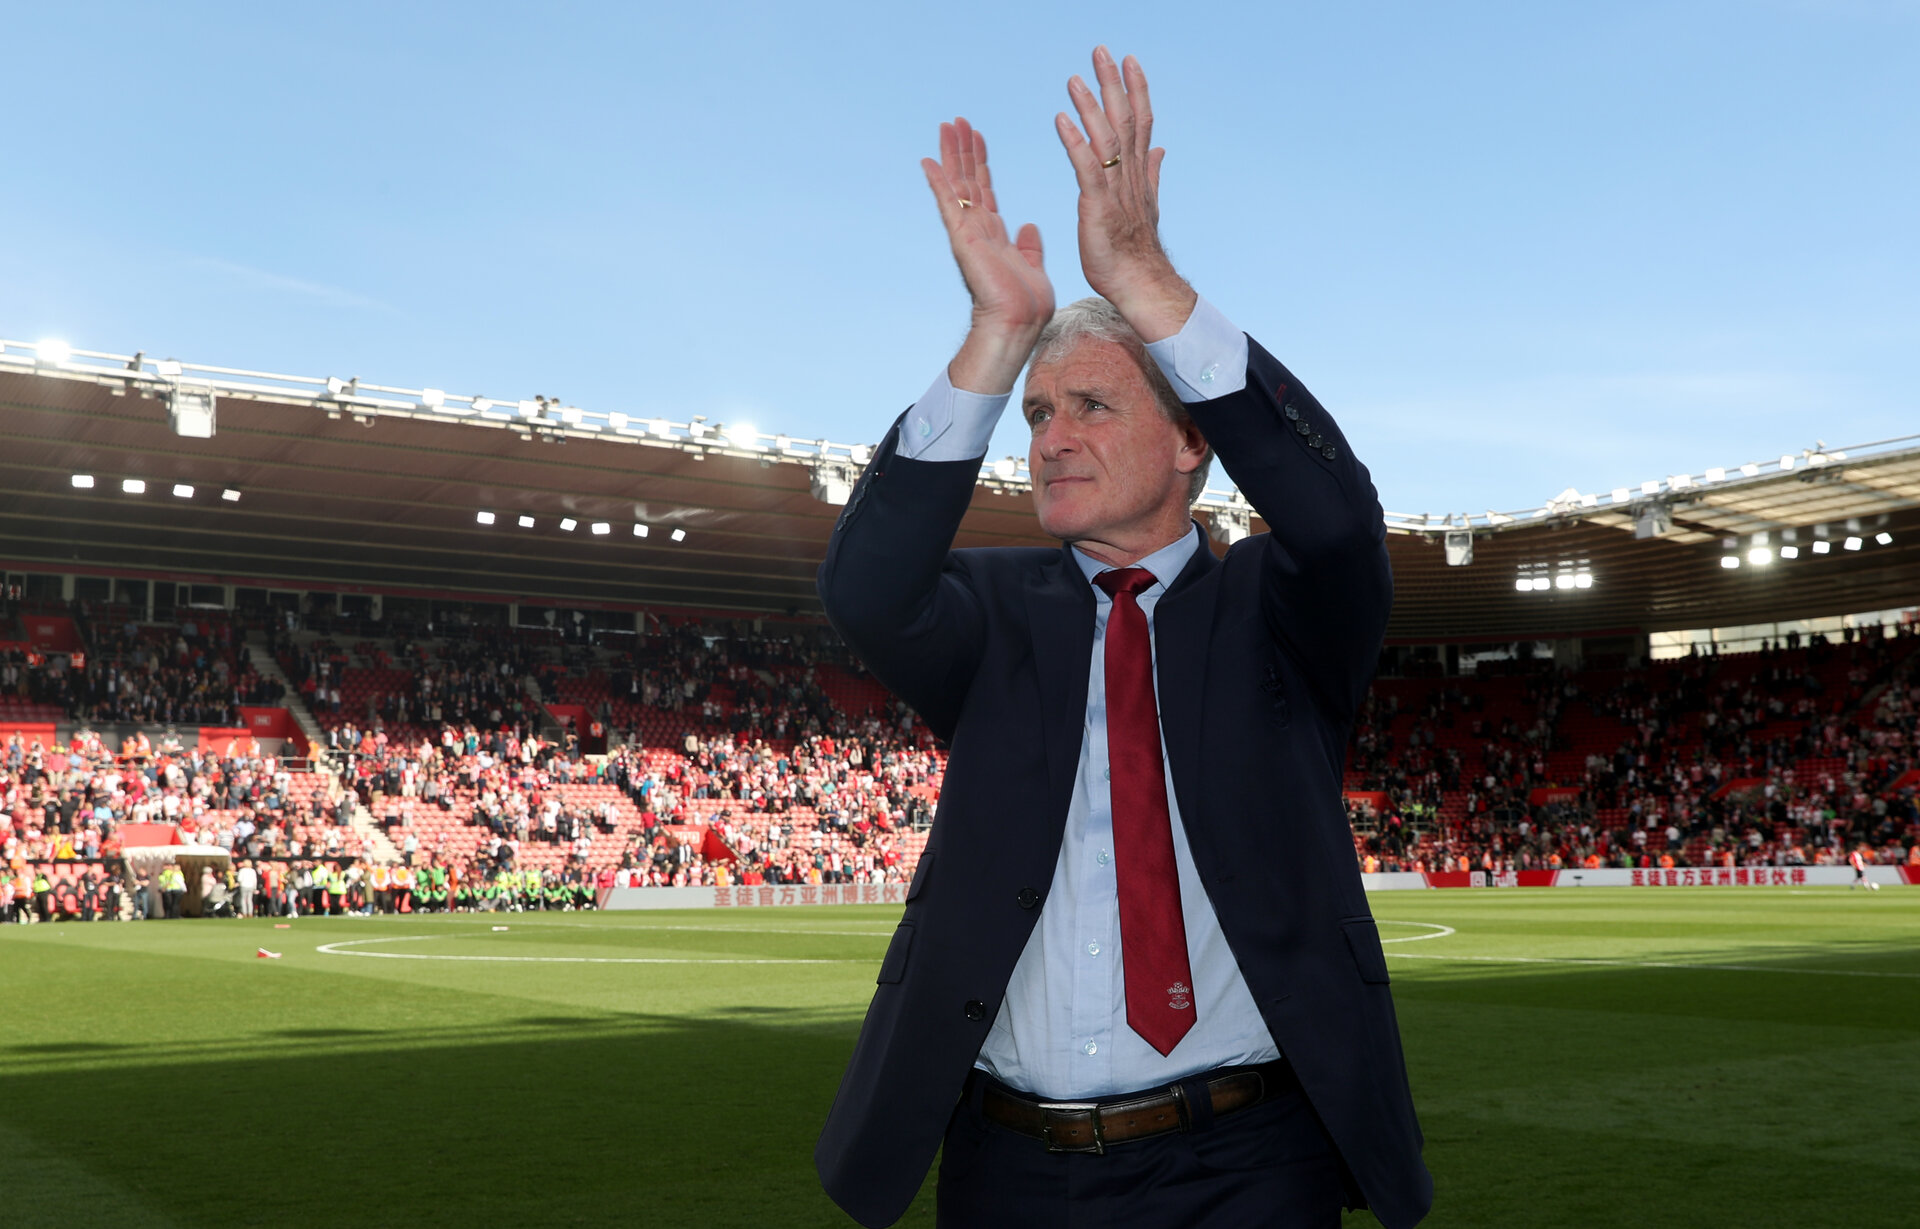 SOUTHAMPTON, ENGLAND - MAY 13: Mark Hughes of Southampton after the Premier League match between Southampton and Manchester City at St Mary's Stadium on May 13, 2018 in Southampton, England. (Photo by Matt Watson/Southampton FC via Getty Images)